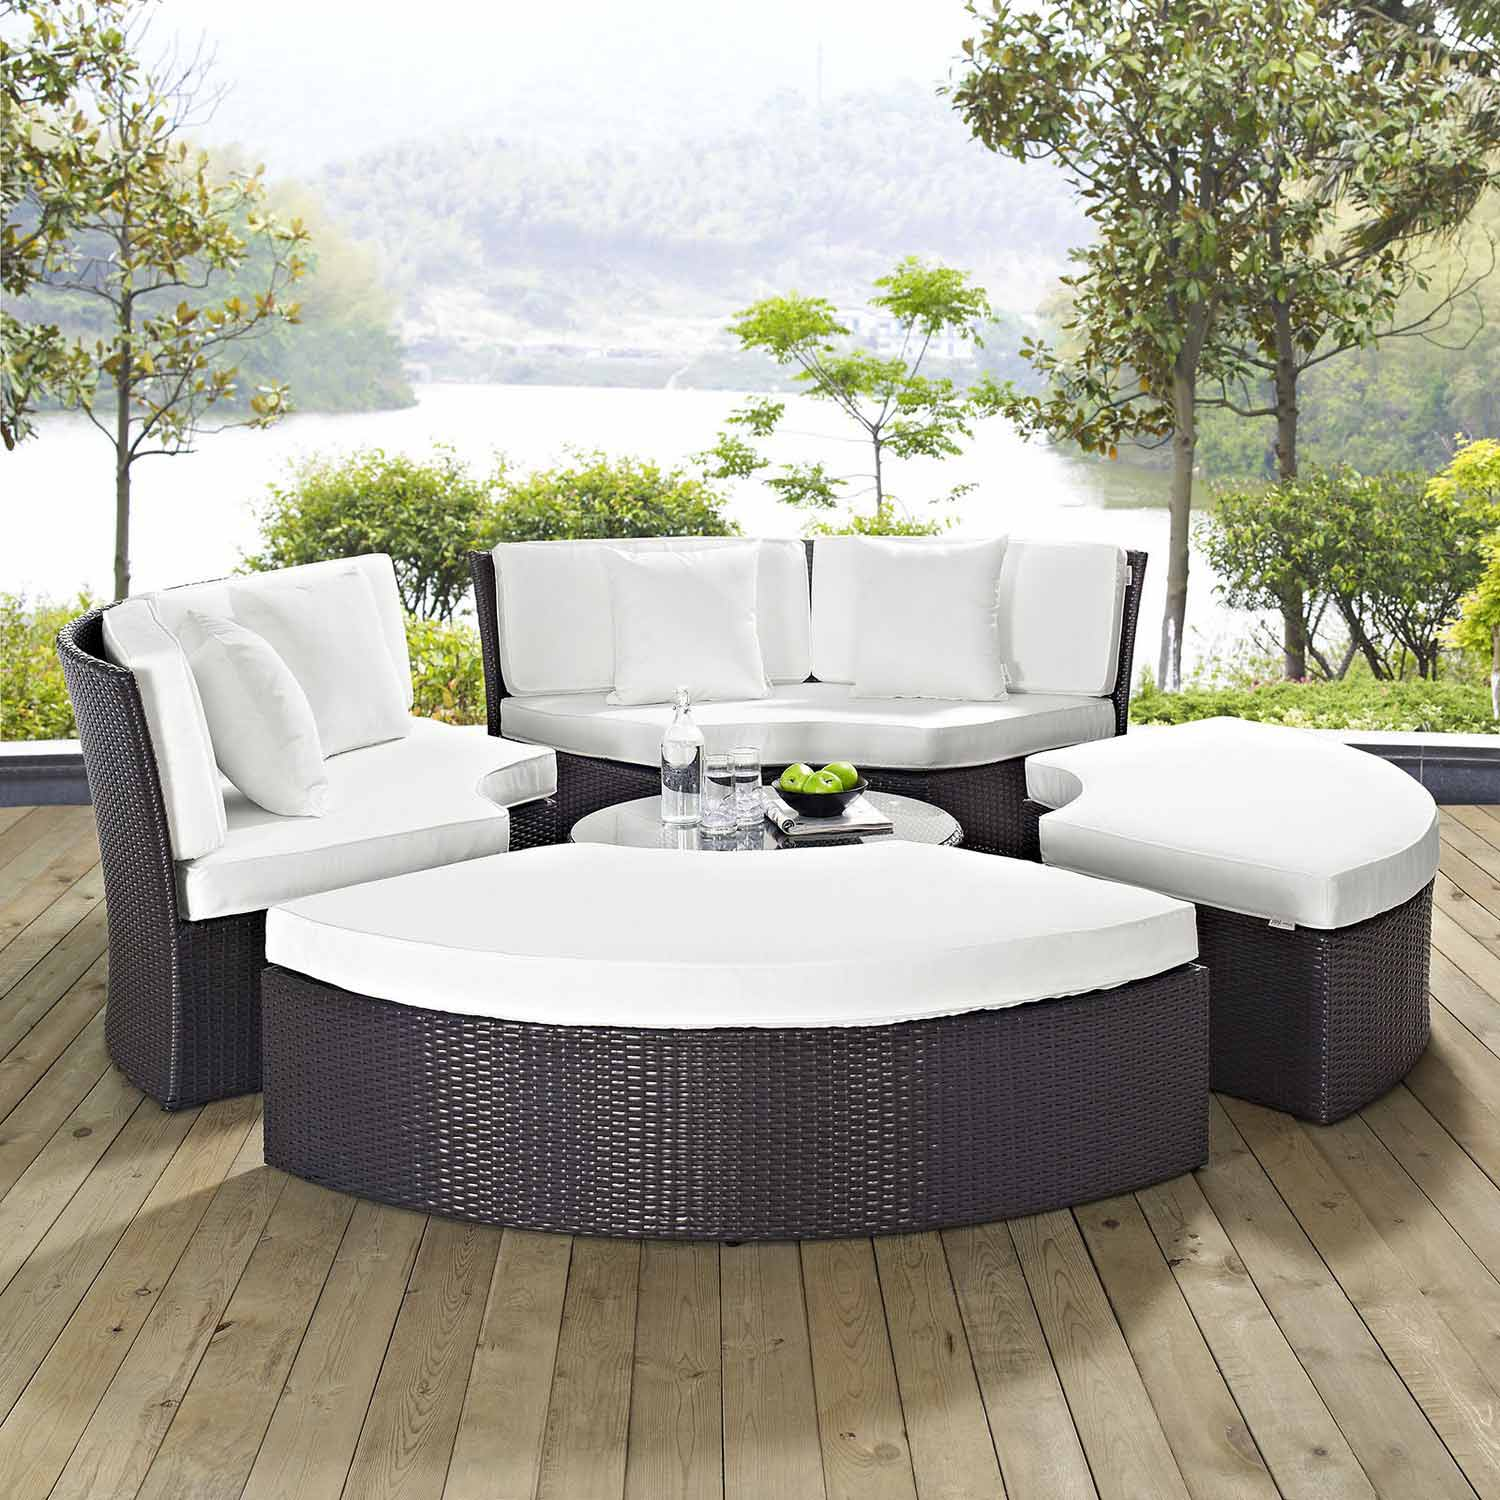 modway pursuit circular outdoor patio daybed set espresso white mw eei 956 exp whi set at. Black Bedroom Furniture Sets. Home Design Ideas